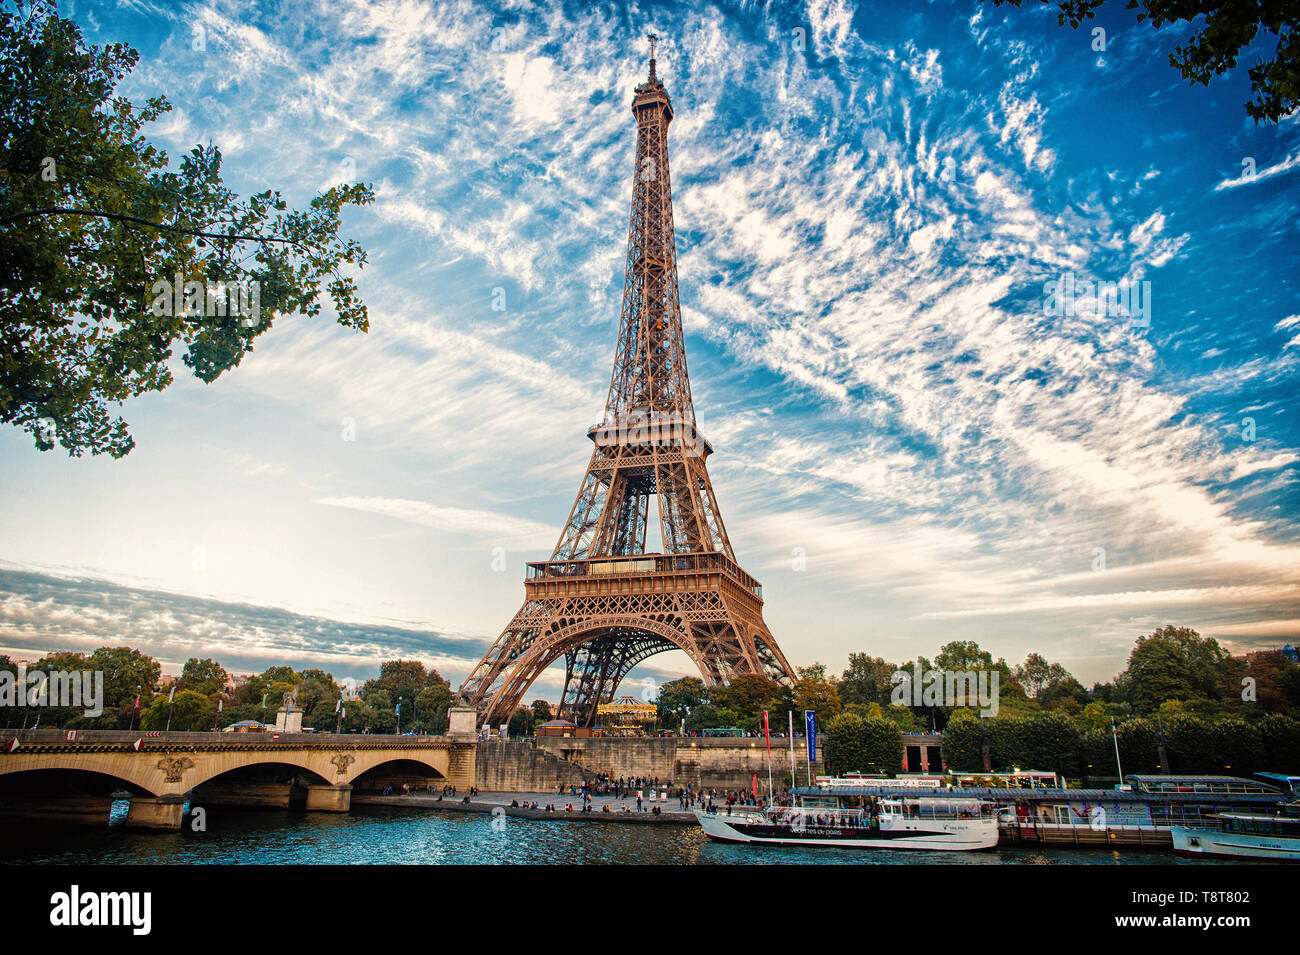 From Paris With Love Eiffel Tower At Sunset In Paris France Romantic Travel Background Eifell Tower Is Paris Symbol Stock Photo Alamy